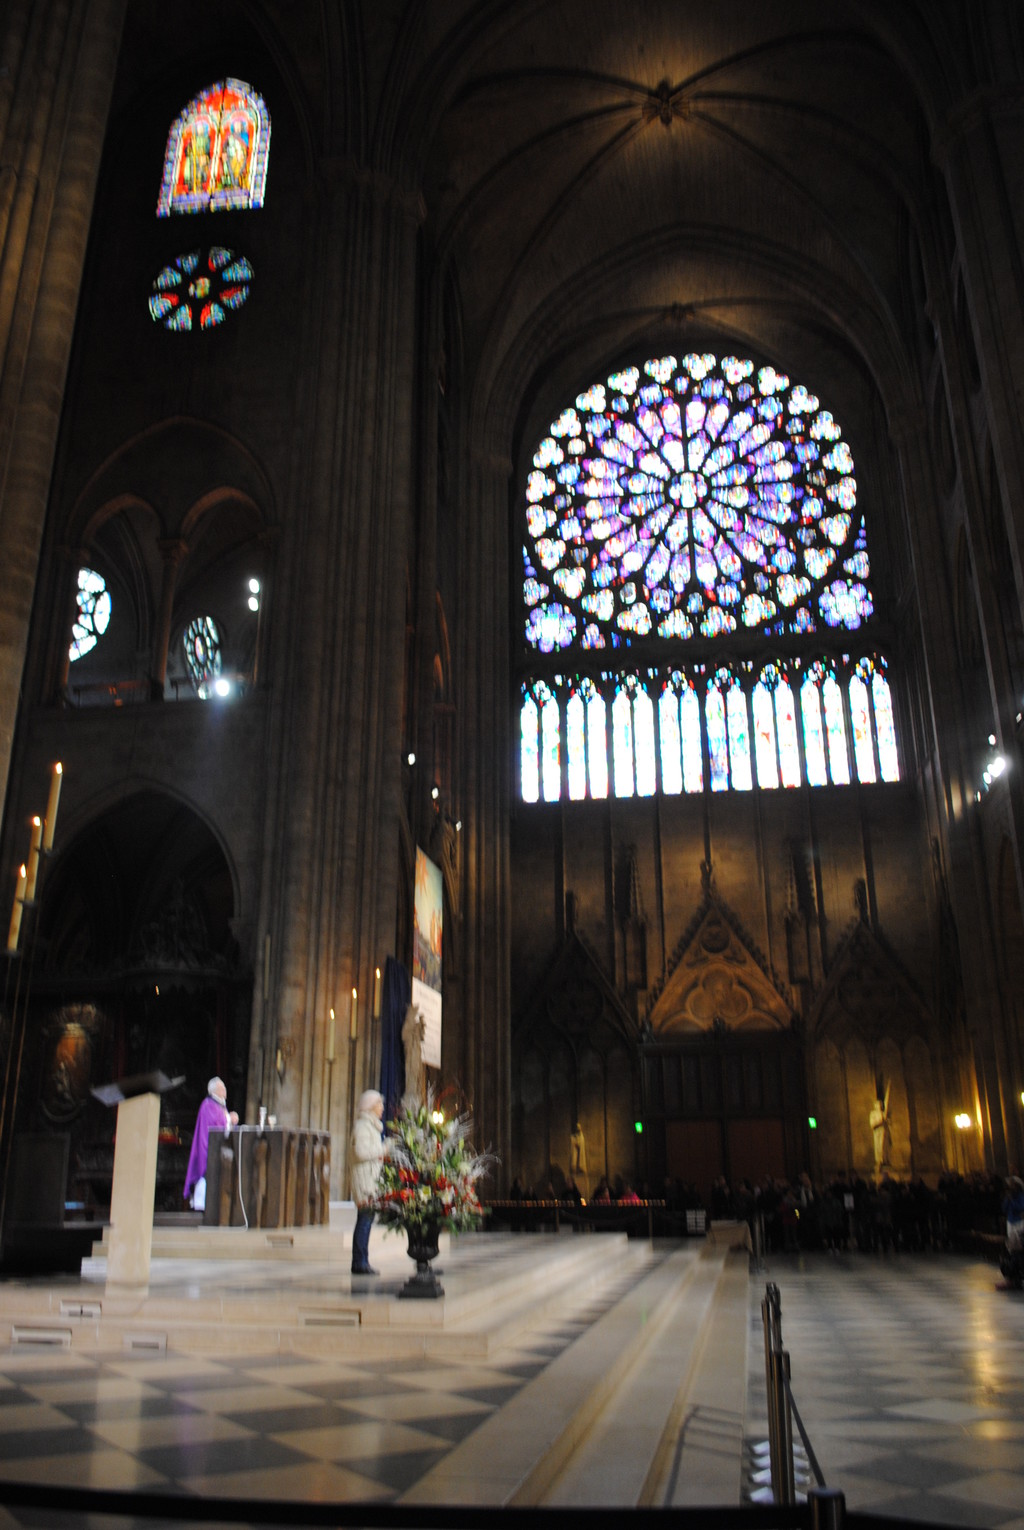 One of the most famous Gothic cathedrals in the world